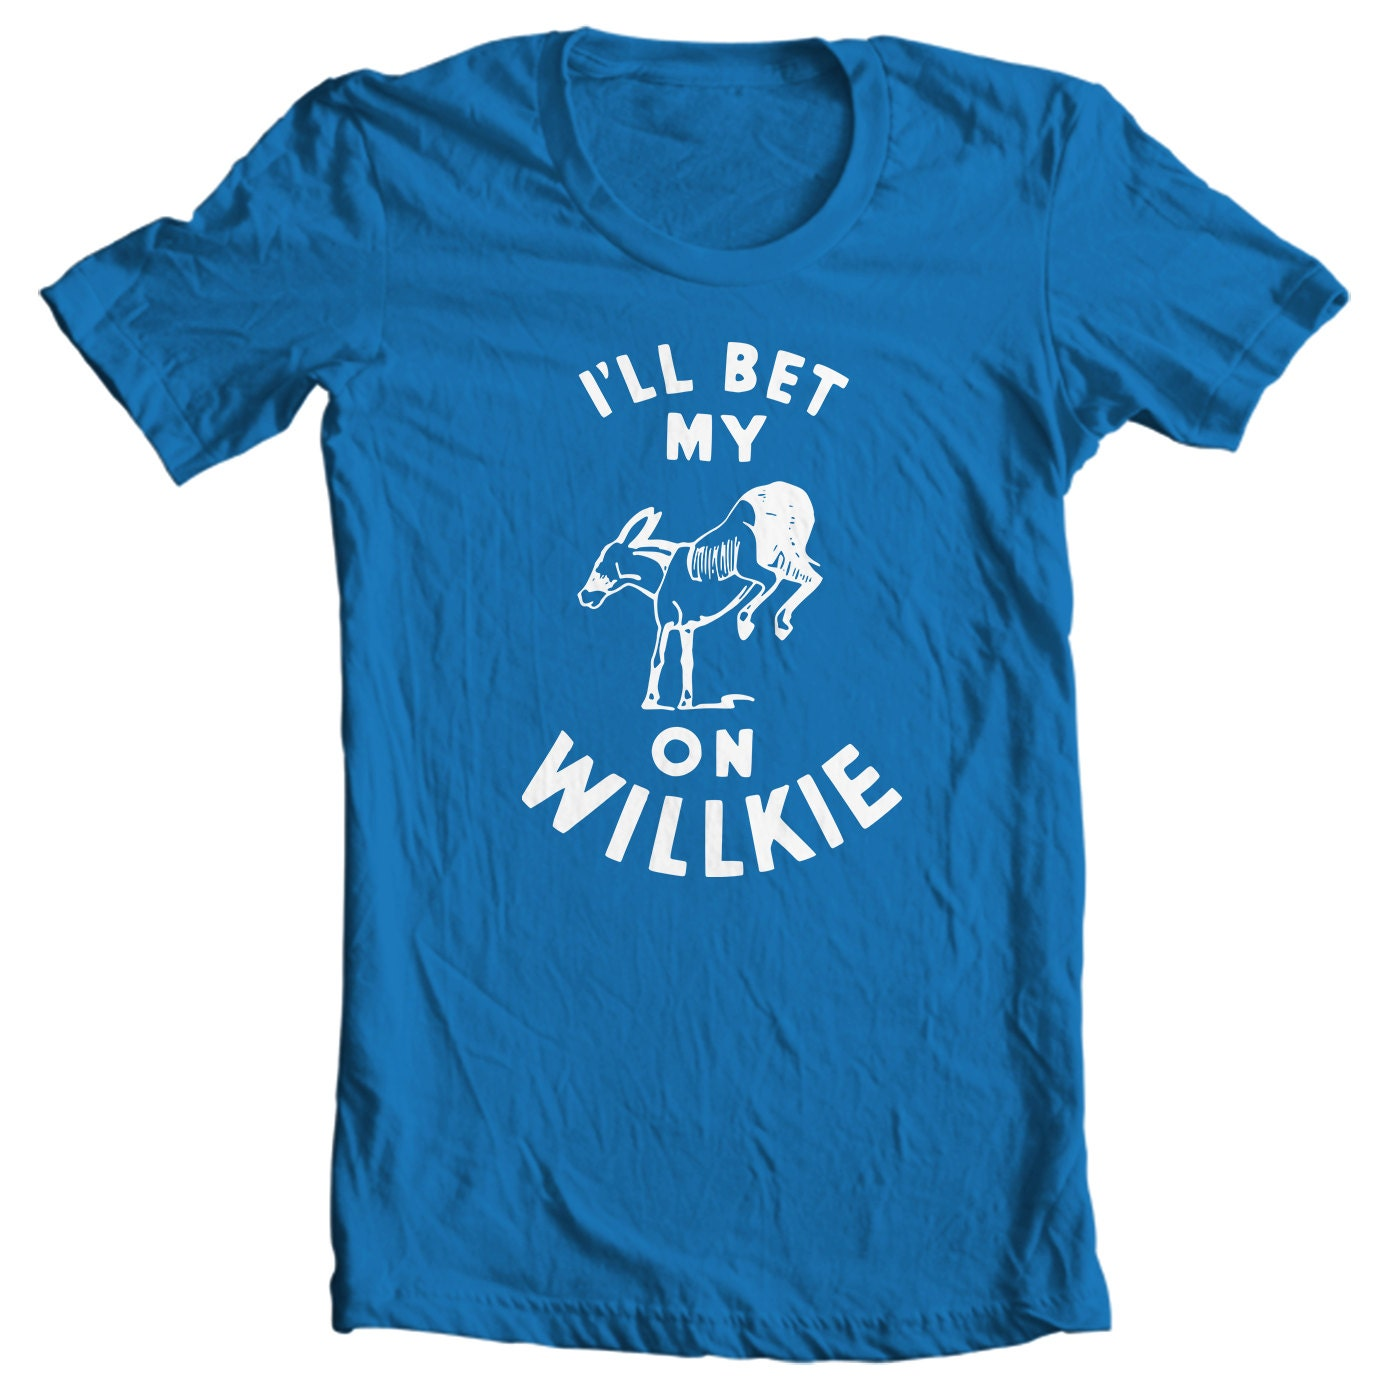 Willkie T-shirt - I'll Bet My Ass On Willkie Political Campaign For Wendell Willkie T-shirt